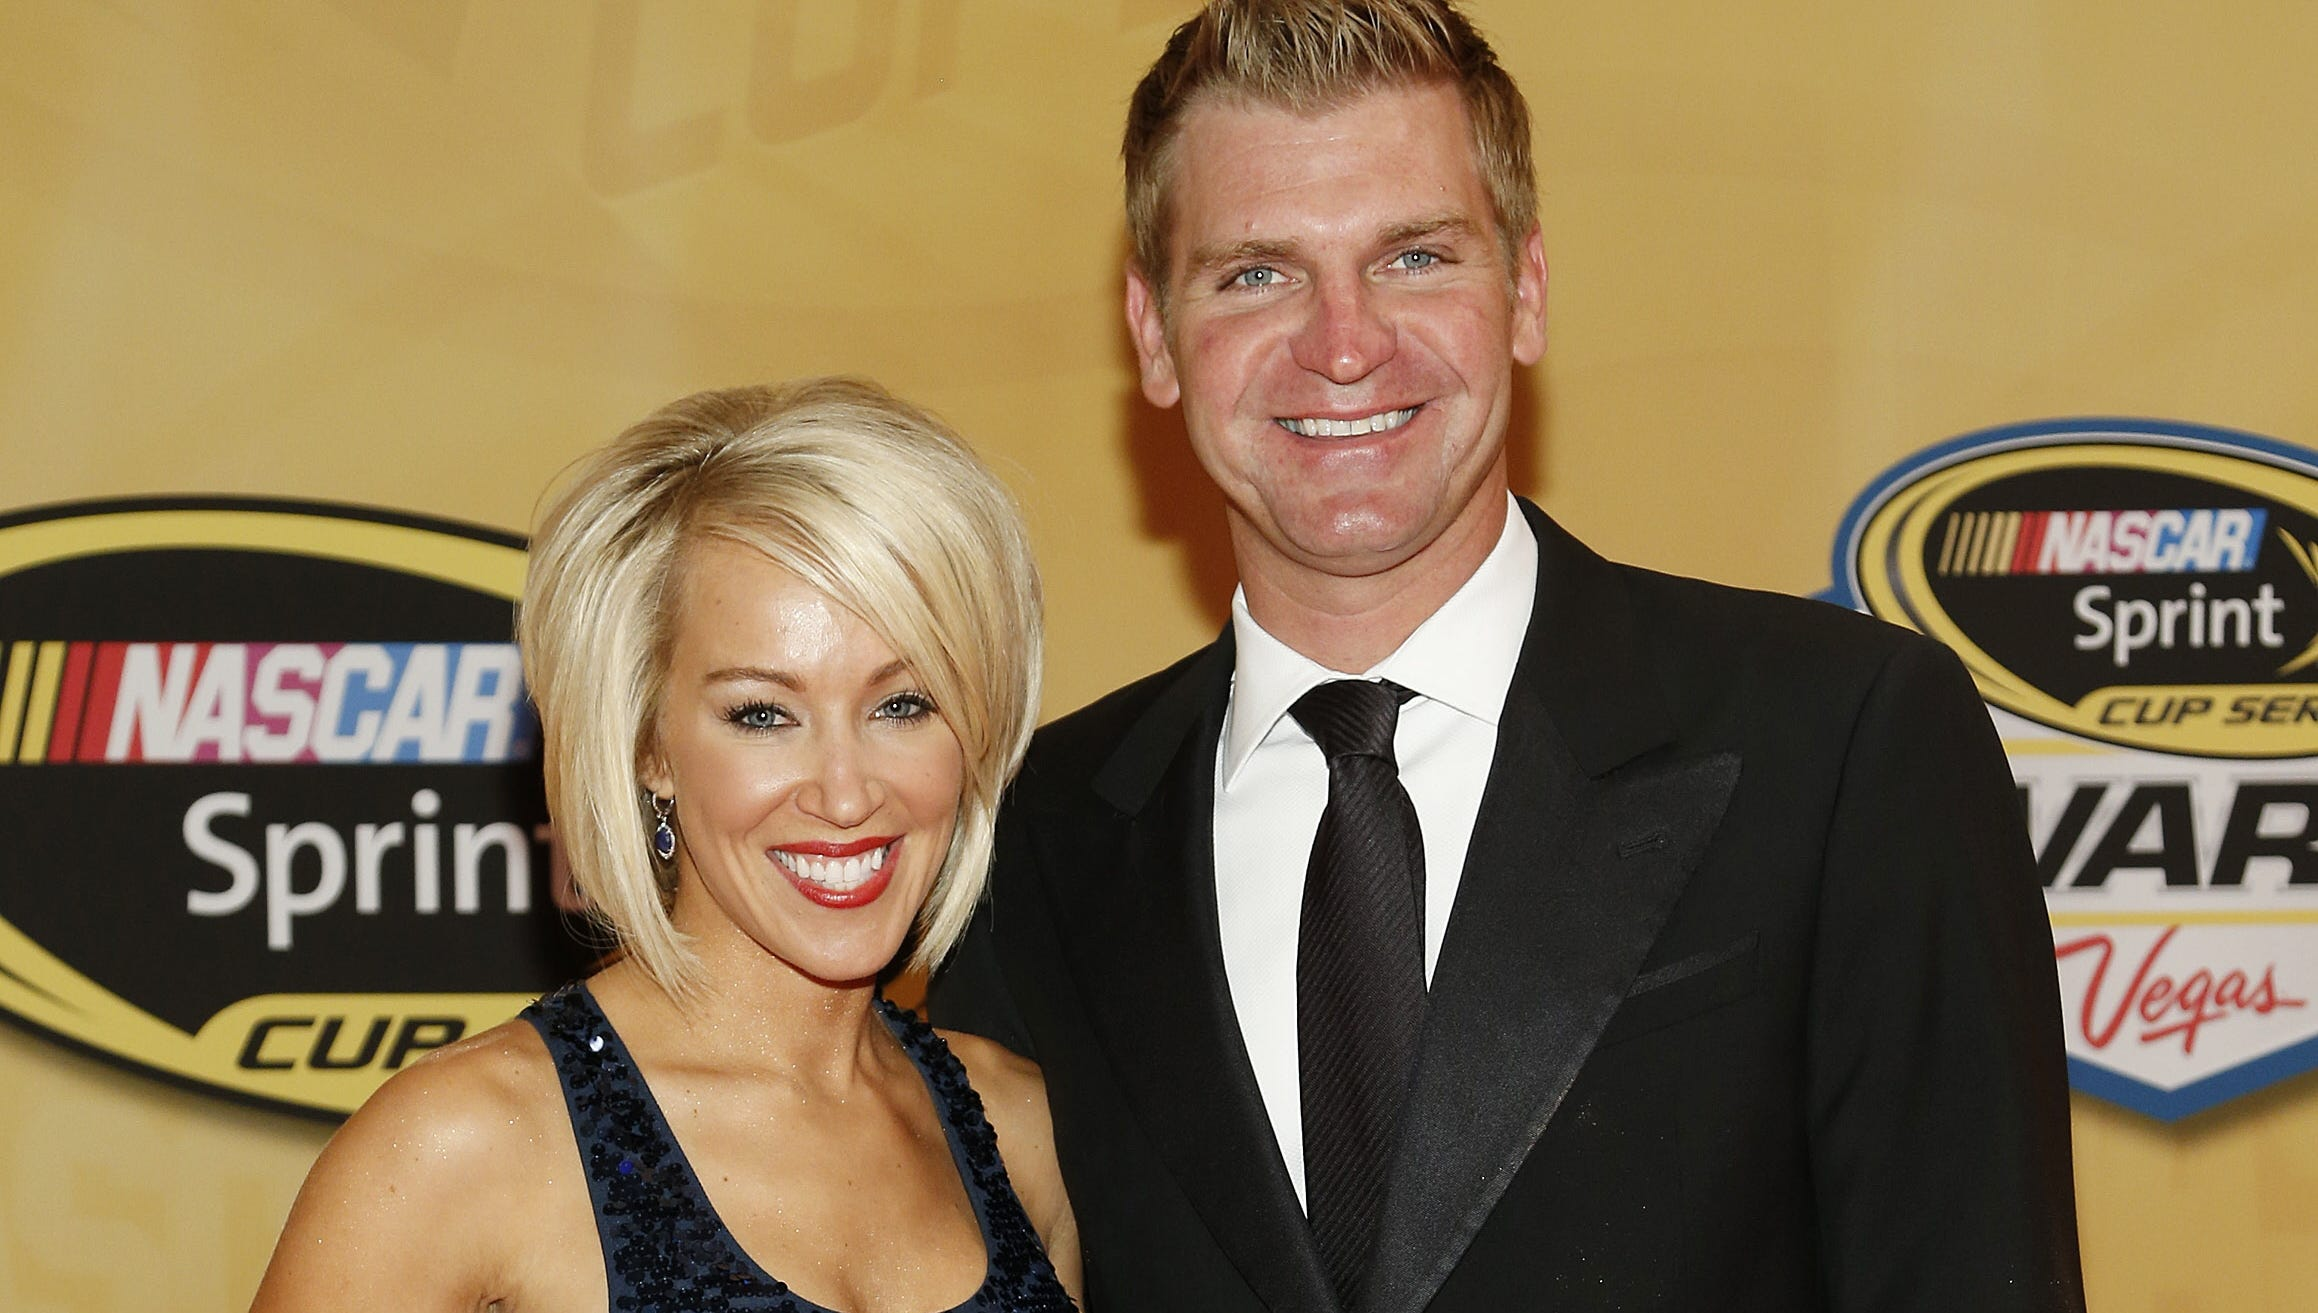 Clint Bowyer with cheerful, Wife Lorra Bowyer